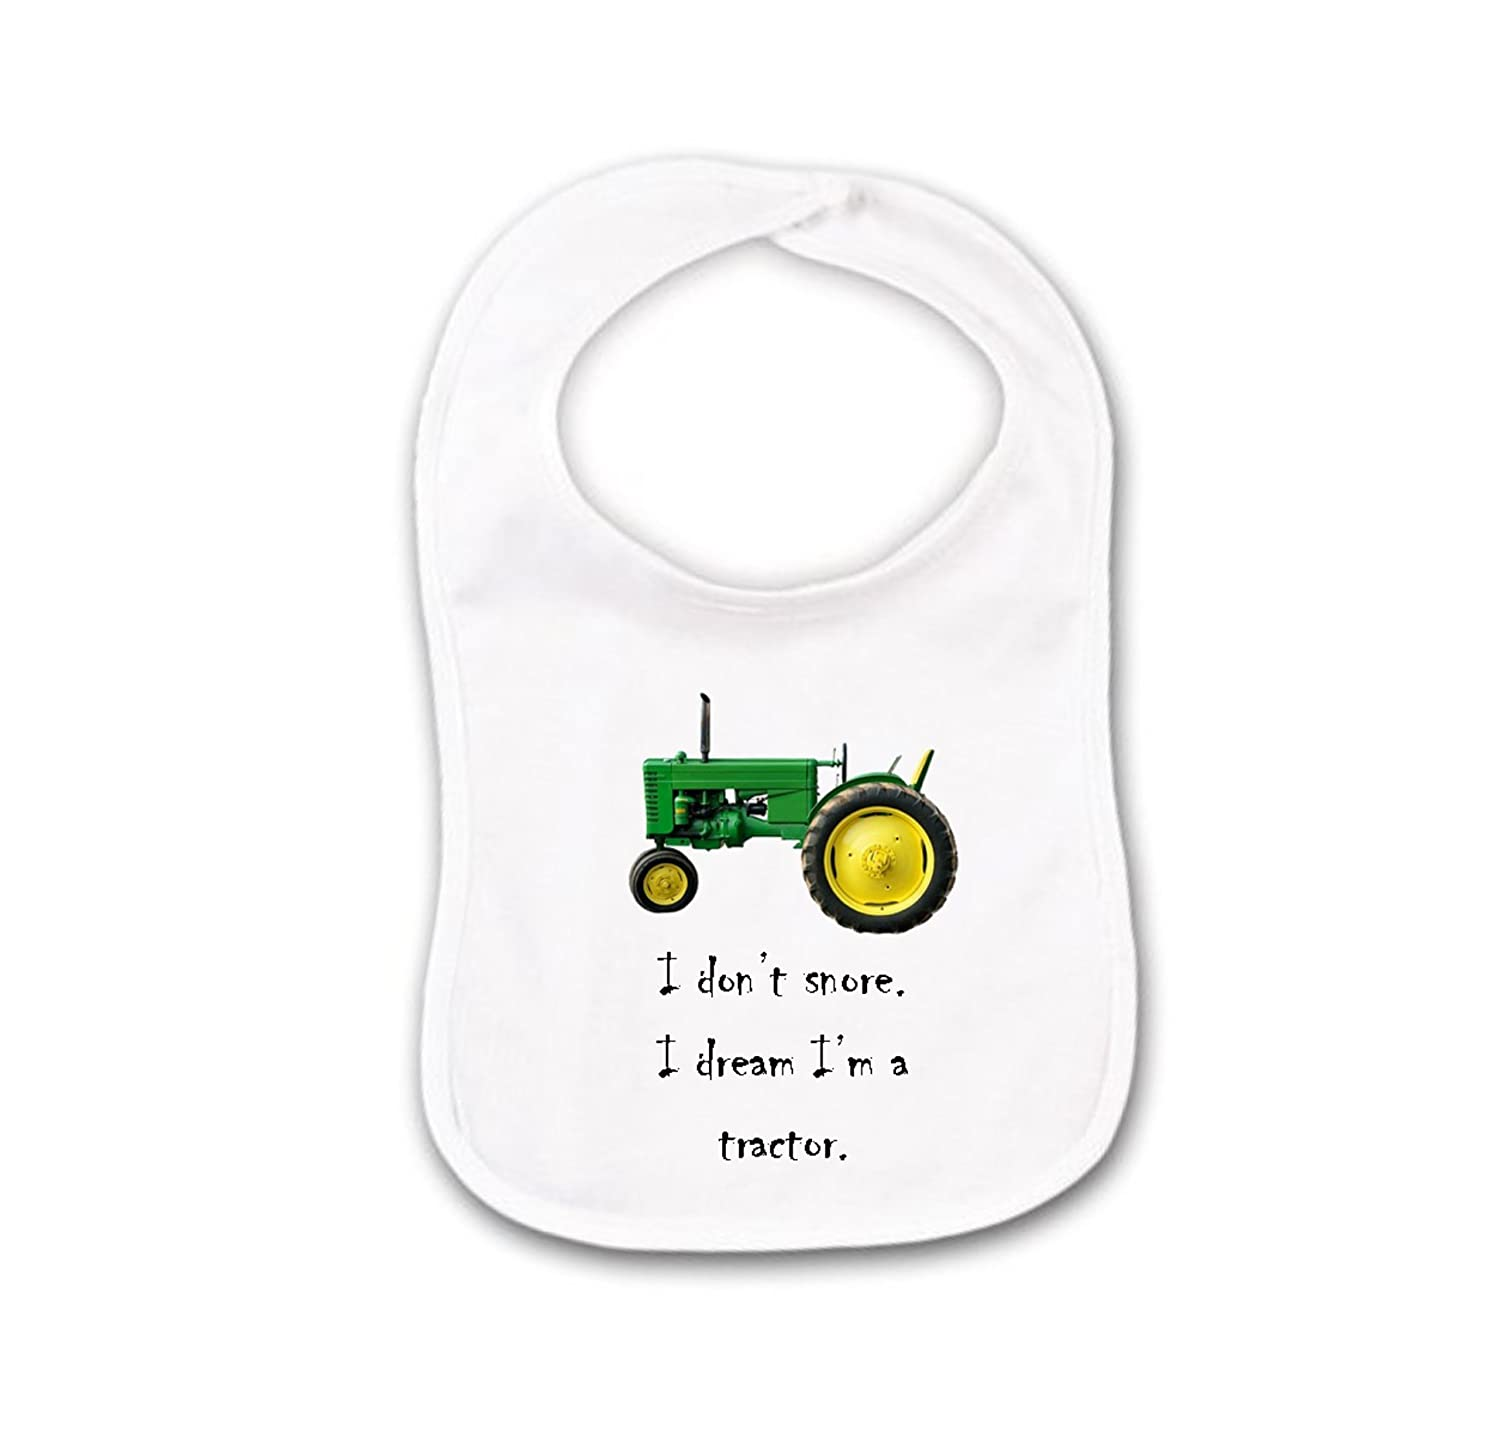 Funny Baby Bib or Burp Cloth With Sayings, I Don't Snore I Dream I'm A Tractor, Green Farm